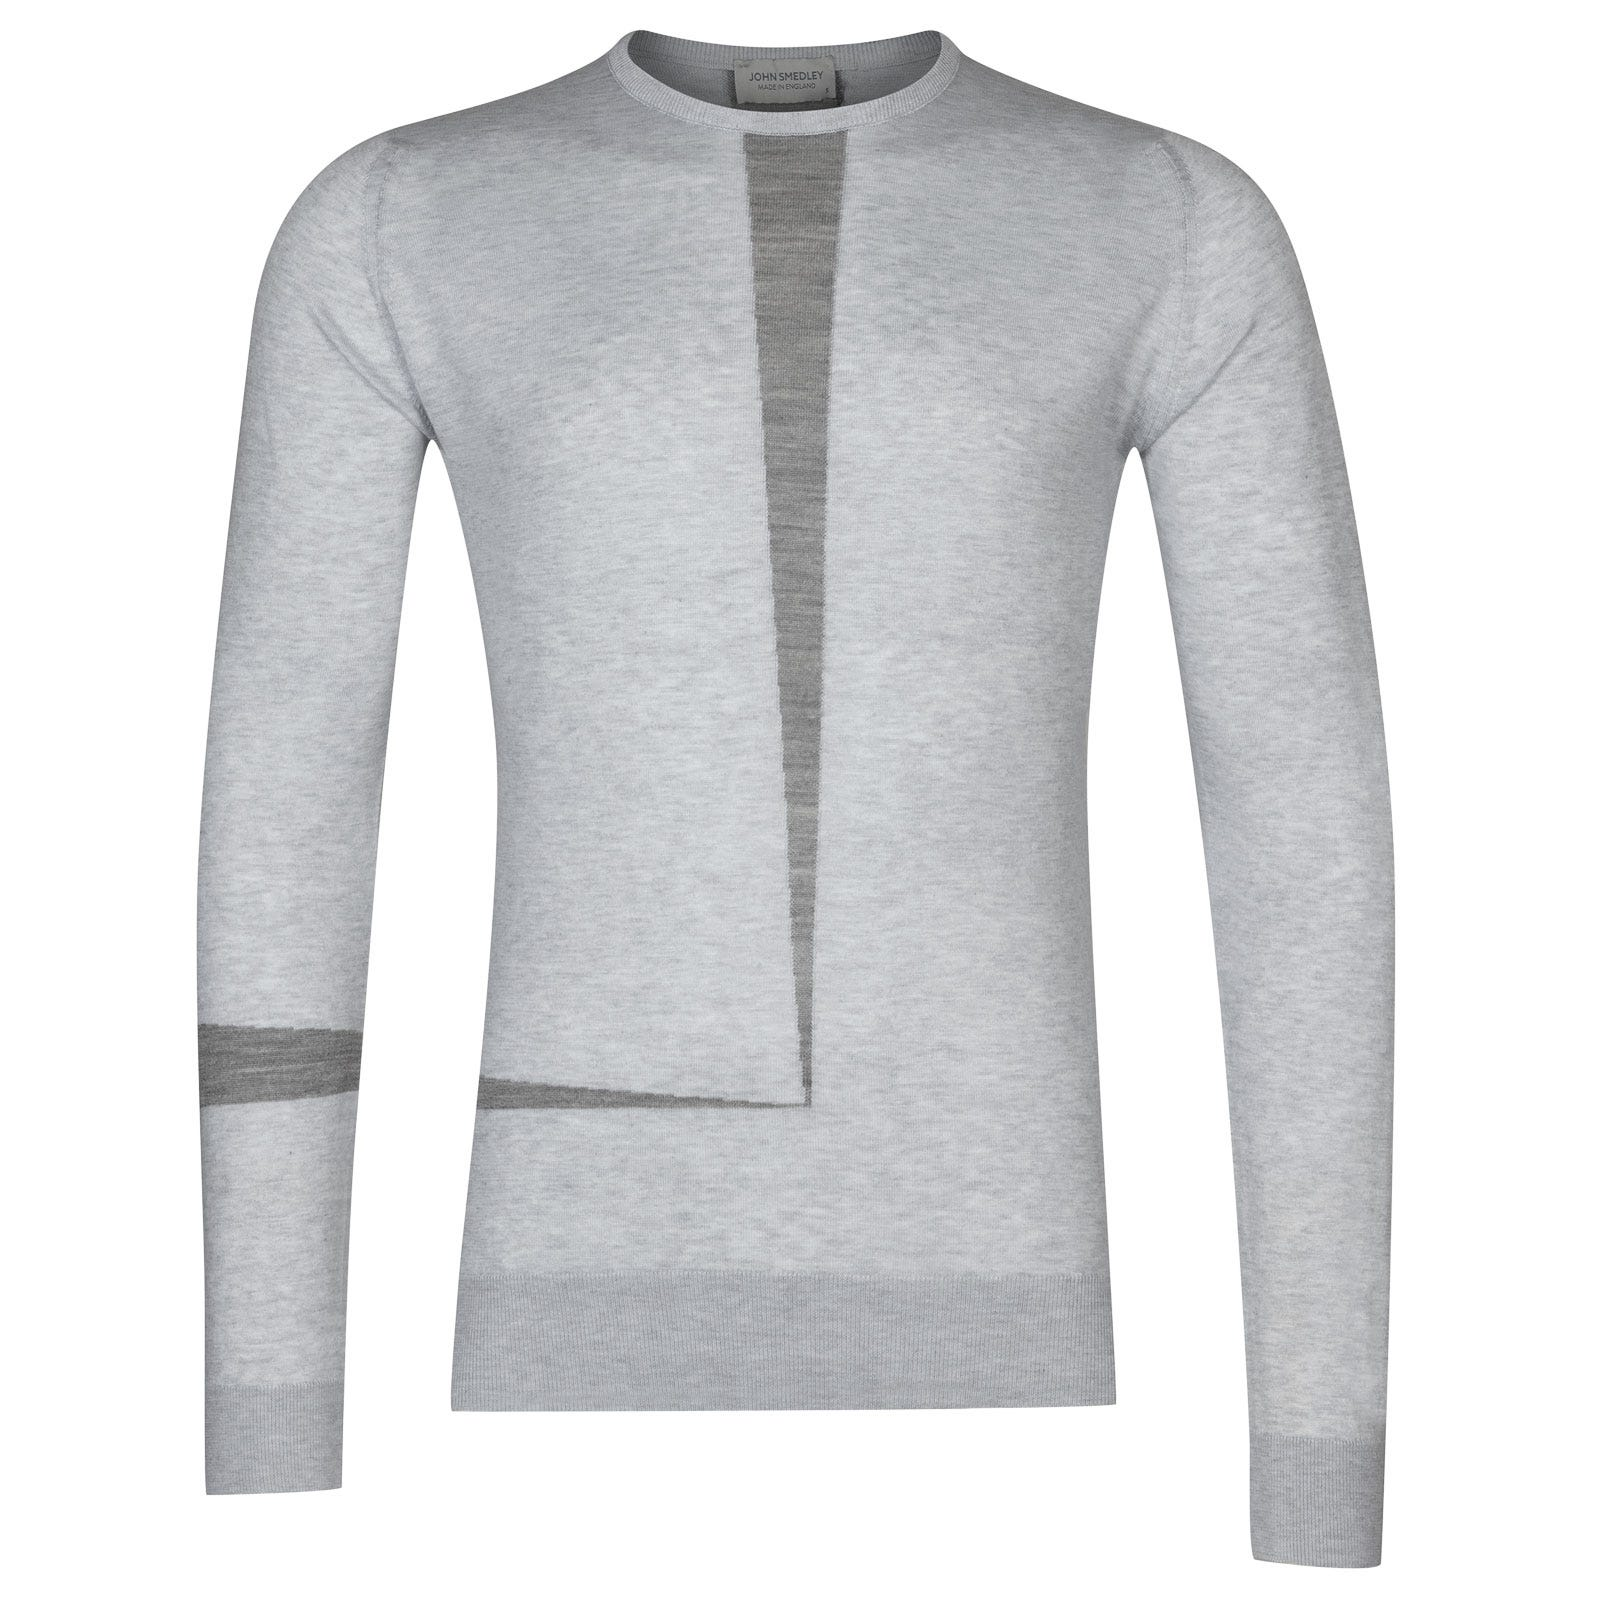 John Smedley Denys in Feather Grey-Xxl